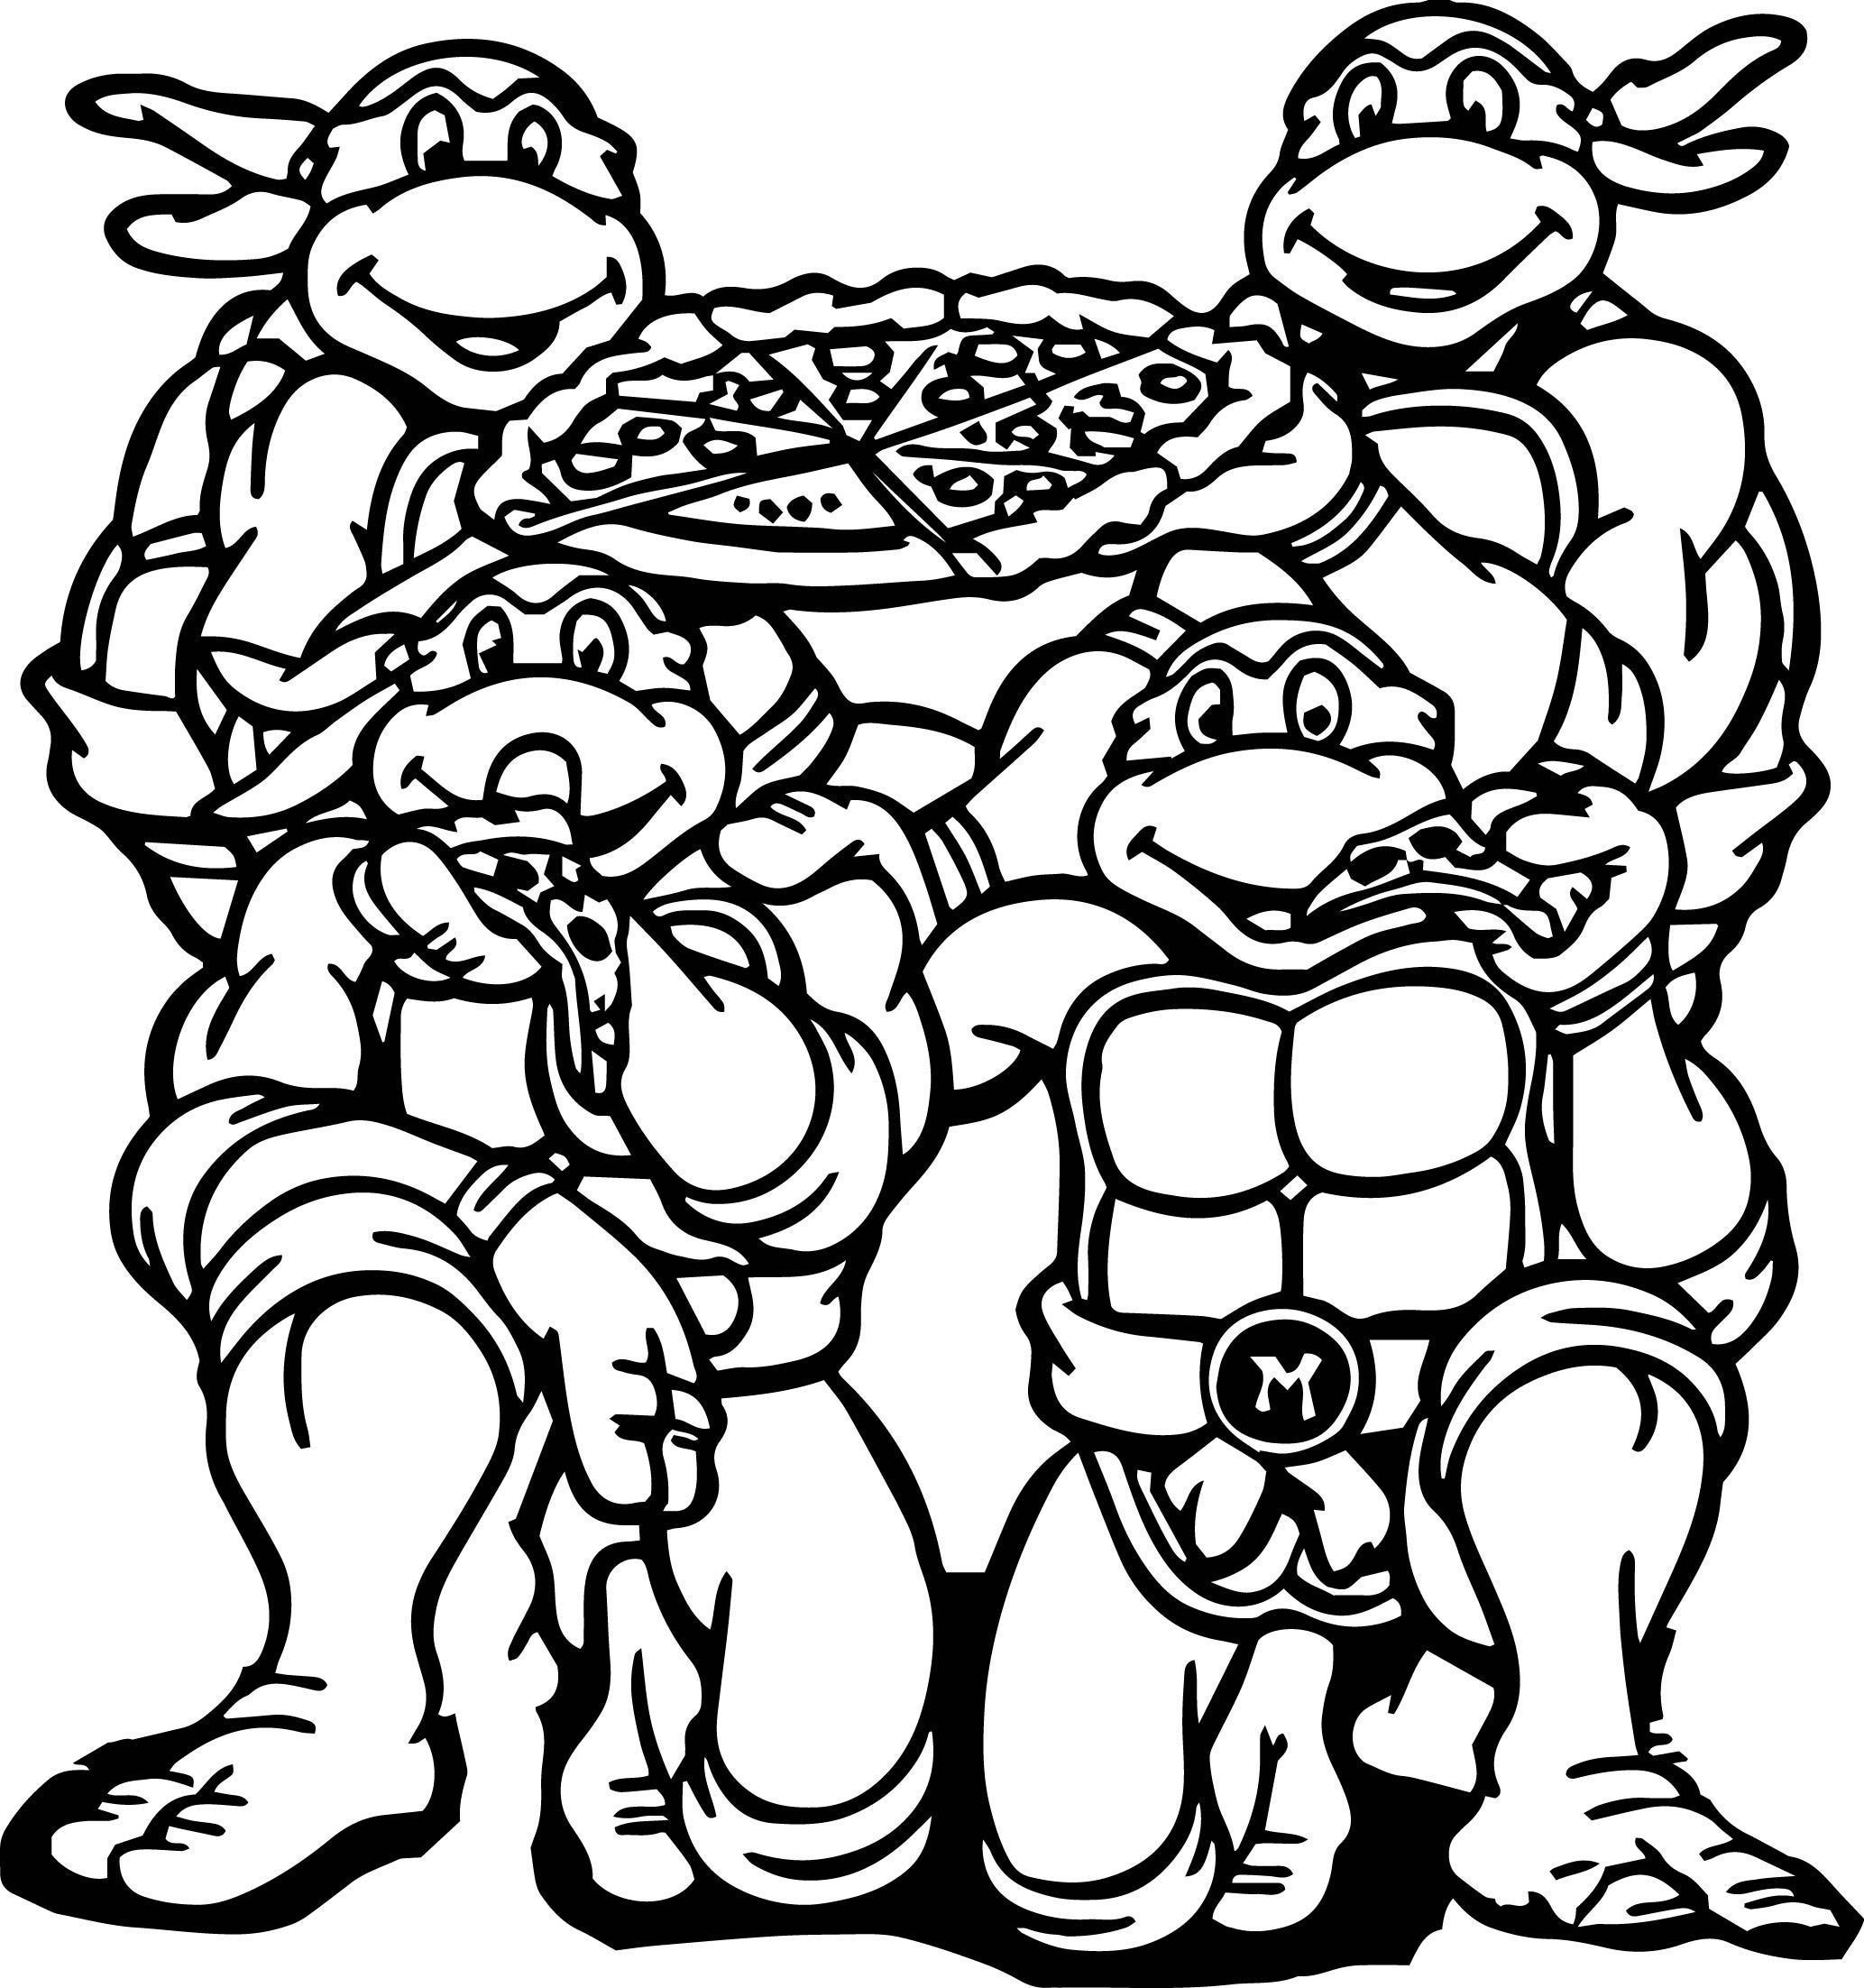 coloring kids picture trolls movie coloring pages best coloring pages for kids picture coloring kids